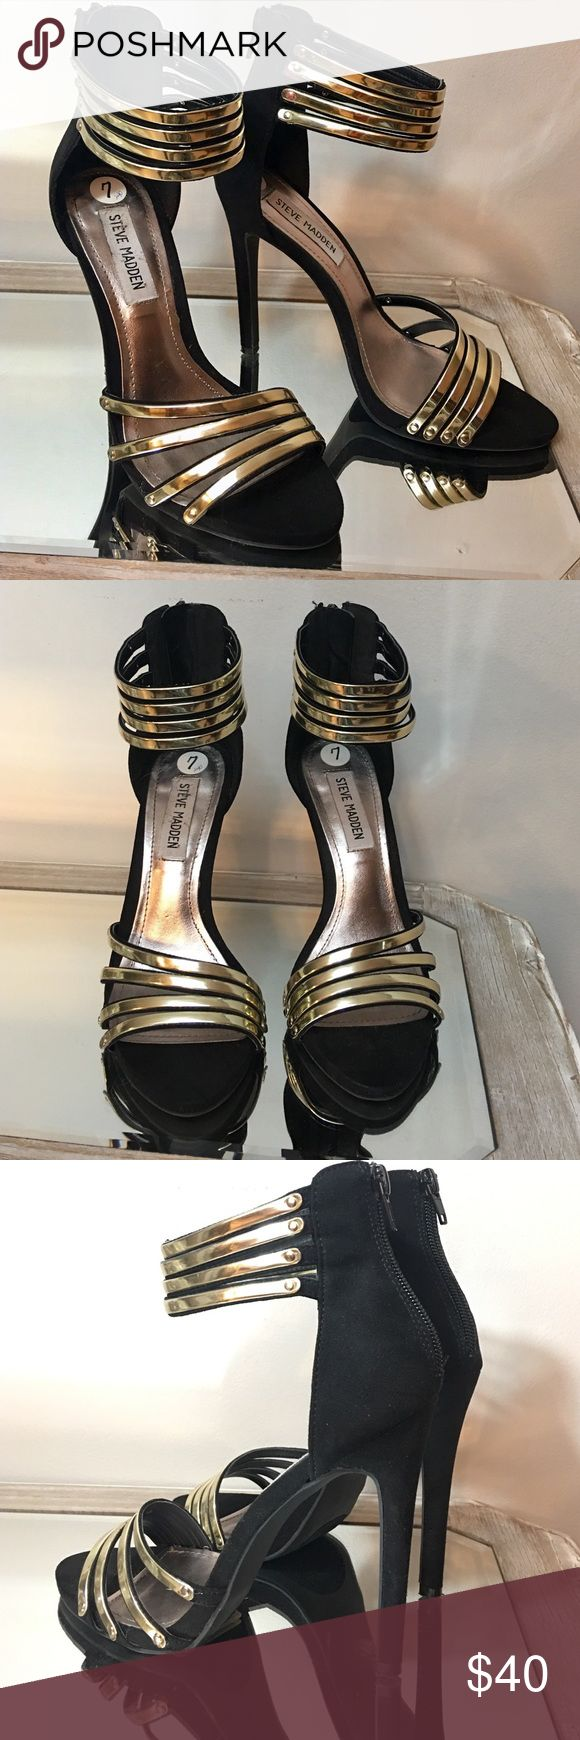 "Steve Madden Black & Gold Open Toe Sandal Heels Excellent condition! Steve Madden Black & Gold Open Toe Strappy Sandal 4.5"" Heels zips up back. Steve Madden Shoes Heels"